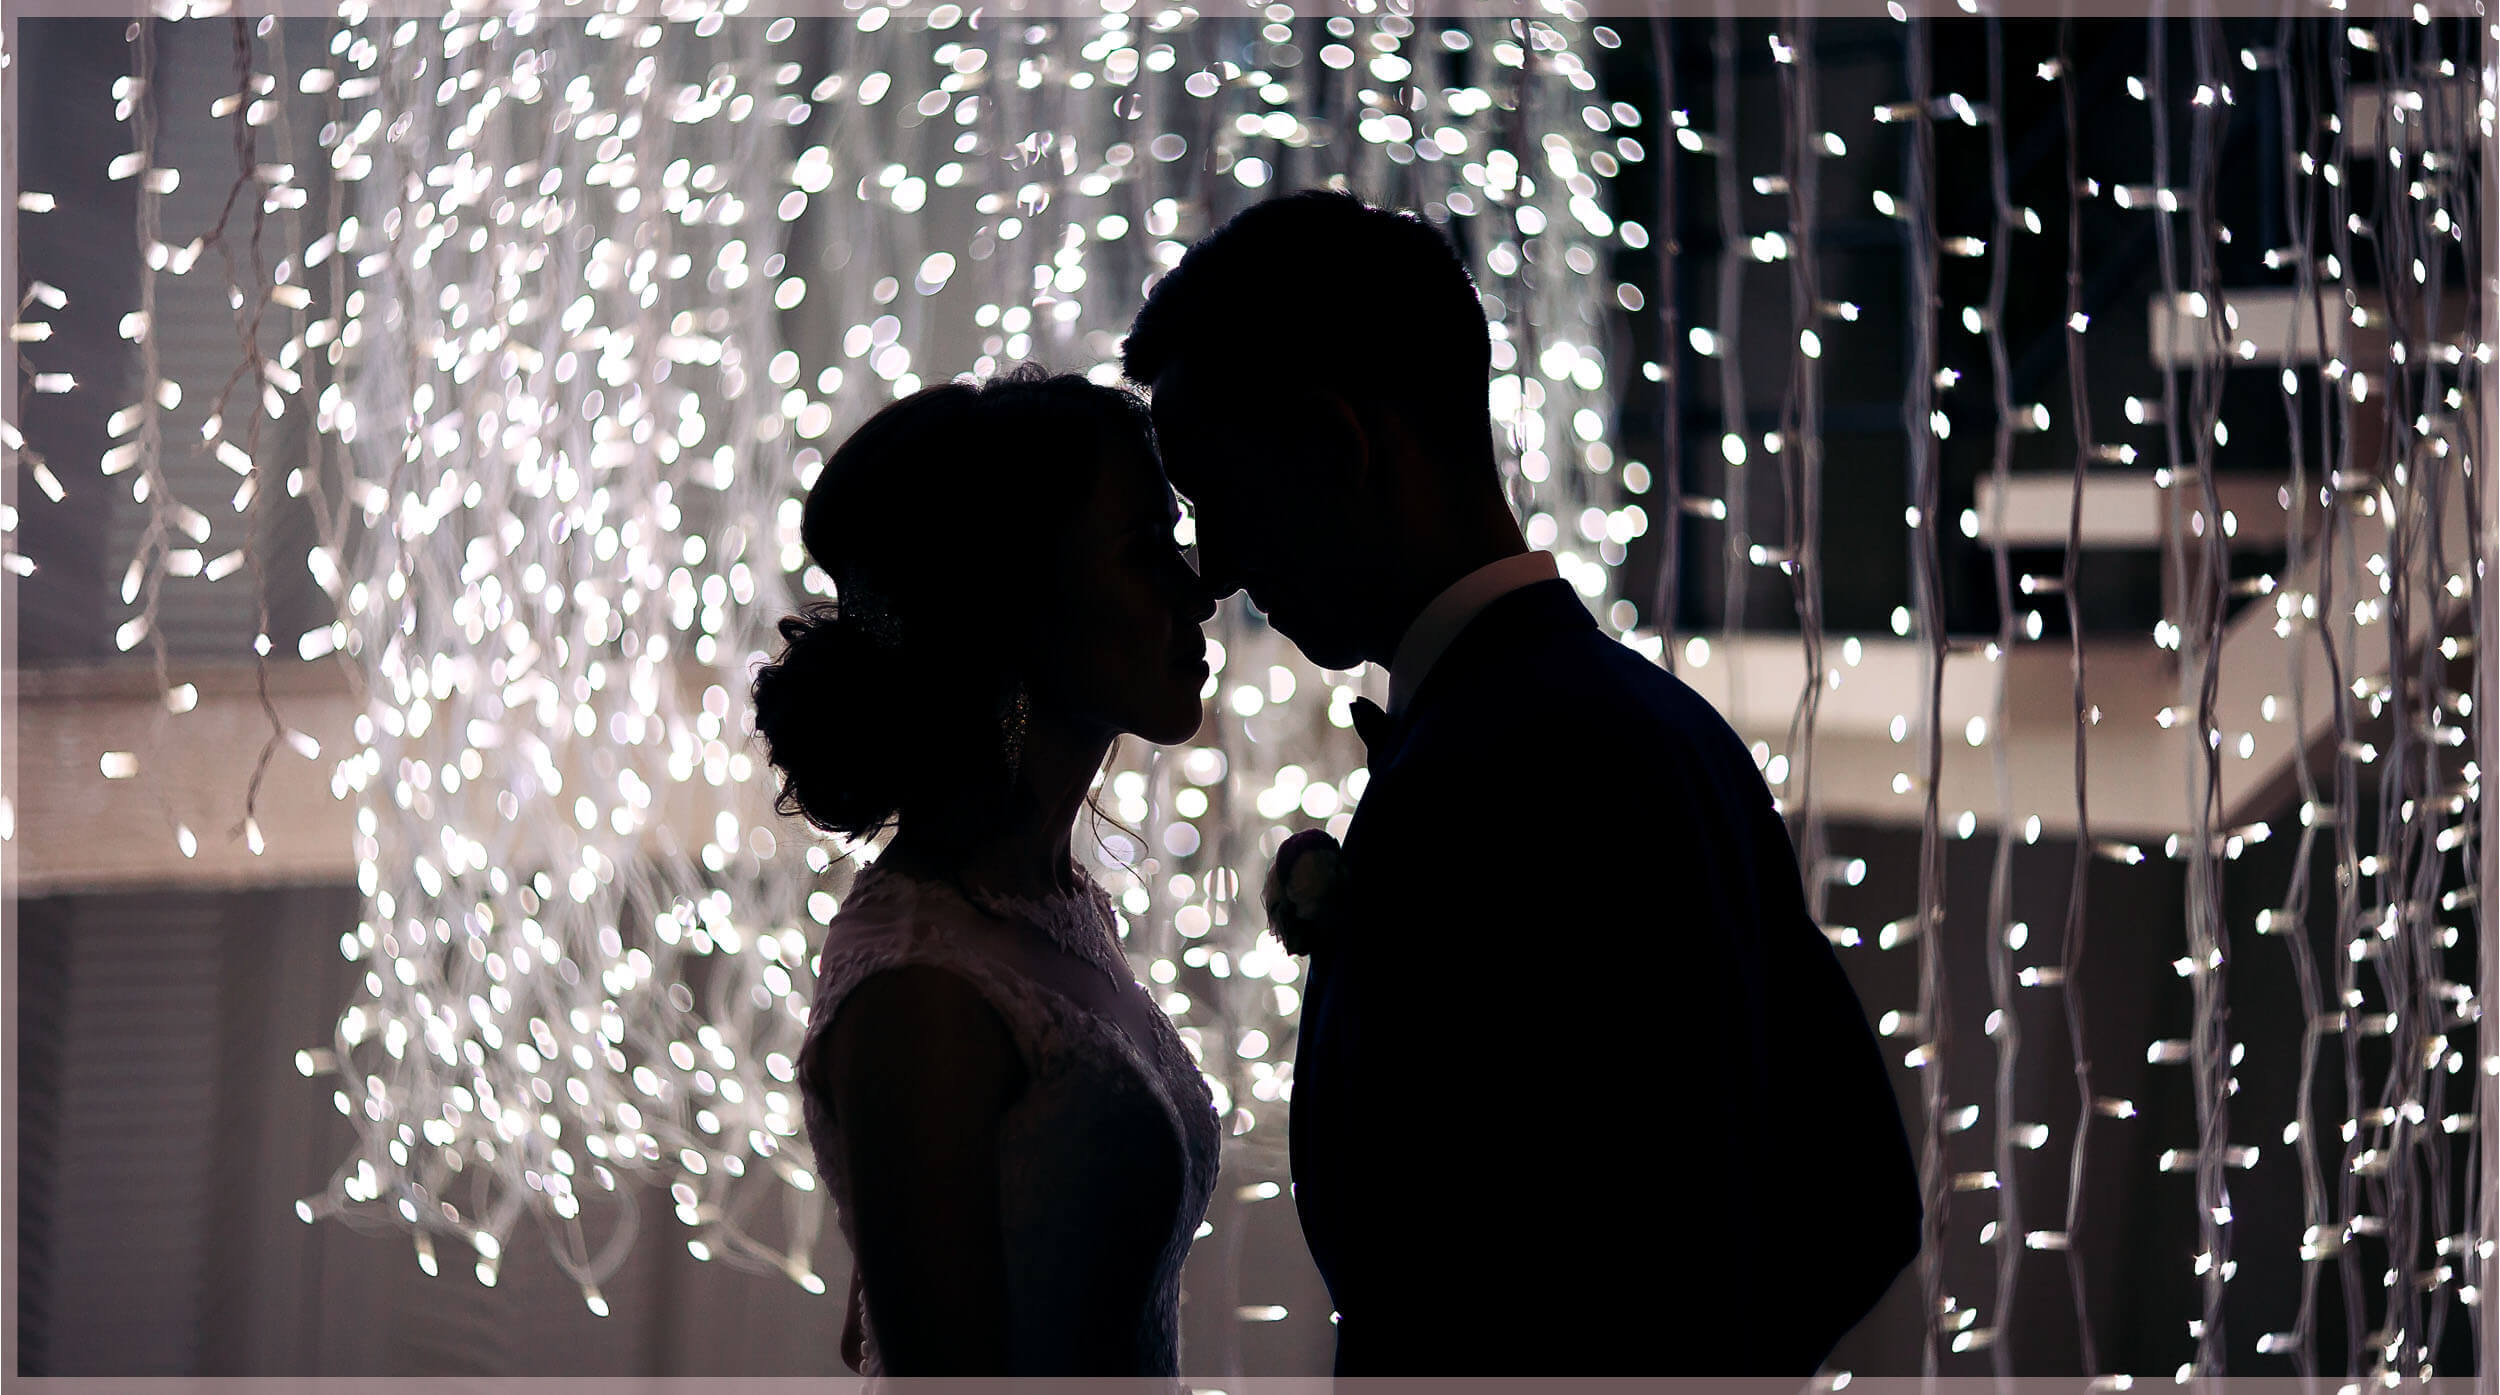 Wedding Photos in low light- the couple's Silhouette